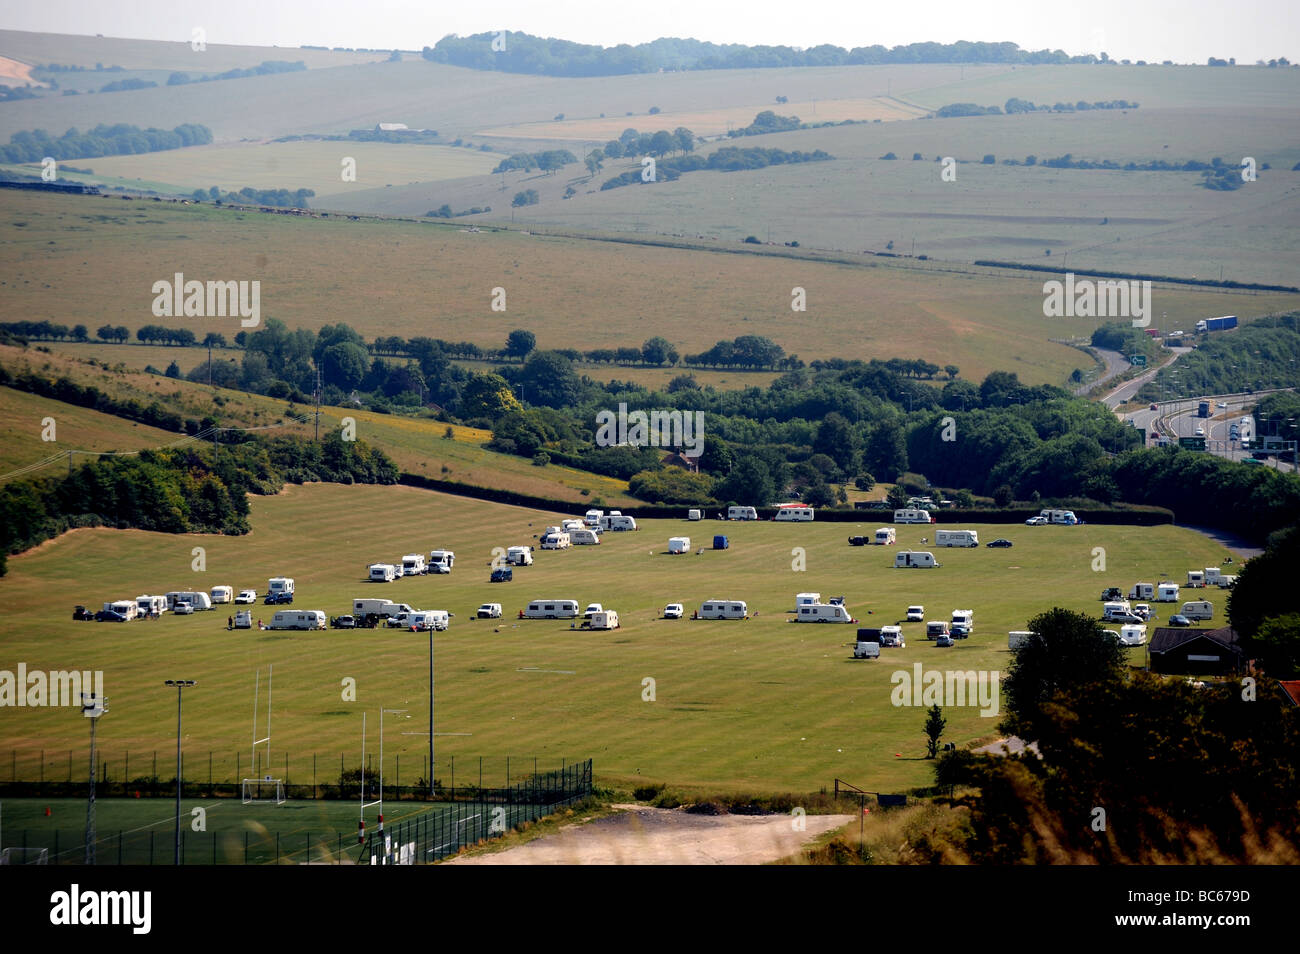 Travellers camp site on the outskirts of Brighton on the Waterhall sports fields - Stock Image